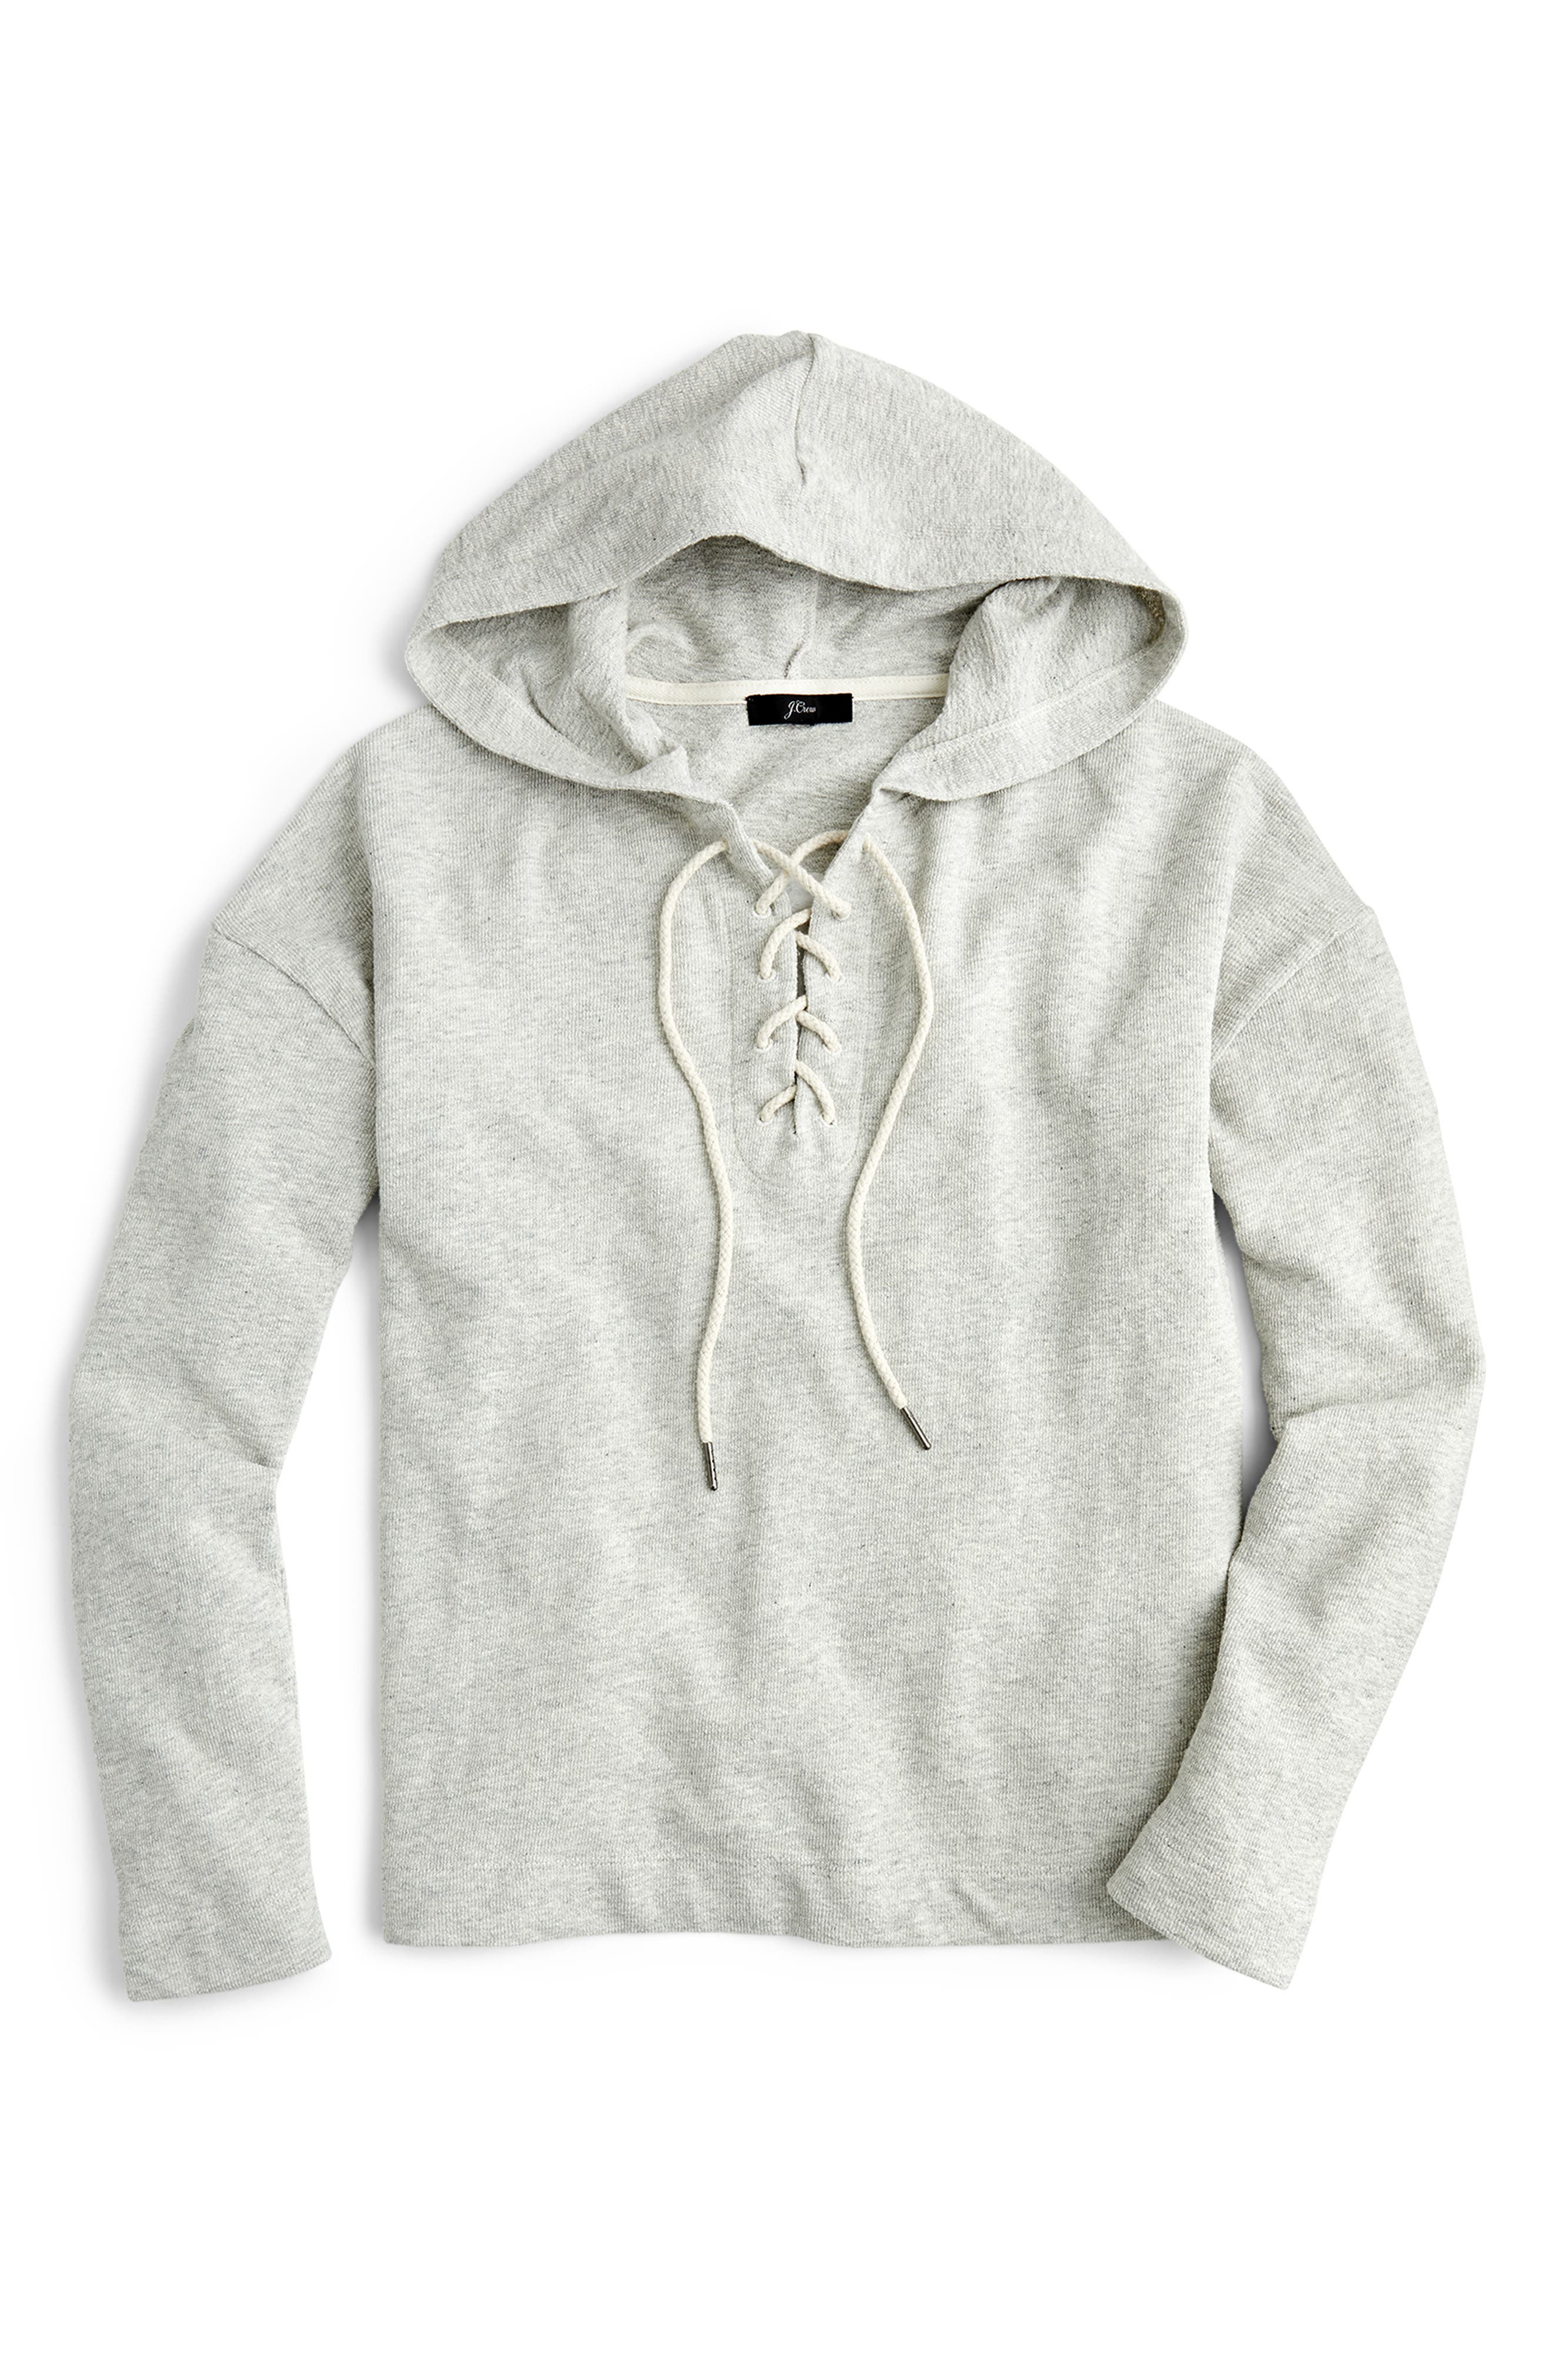 Plus Size J.crew Lace-Up Swing Hoodie Pullover Sweatshirt, Size - Grey